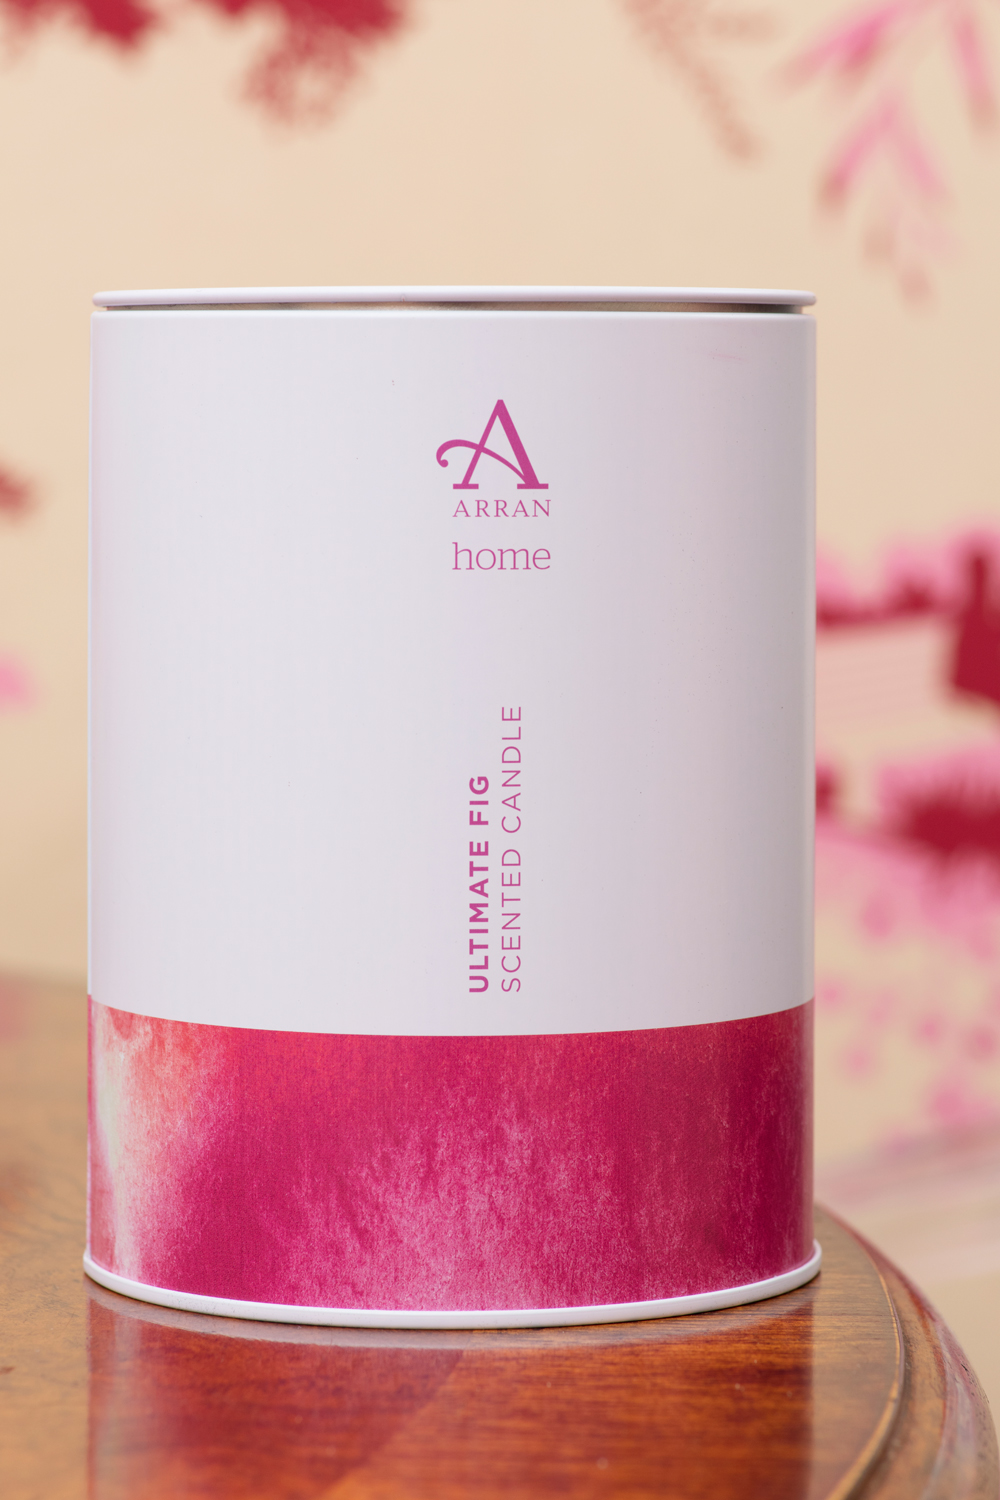 Arran candle in The Pink House/Photo: Susie Lowe